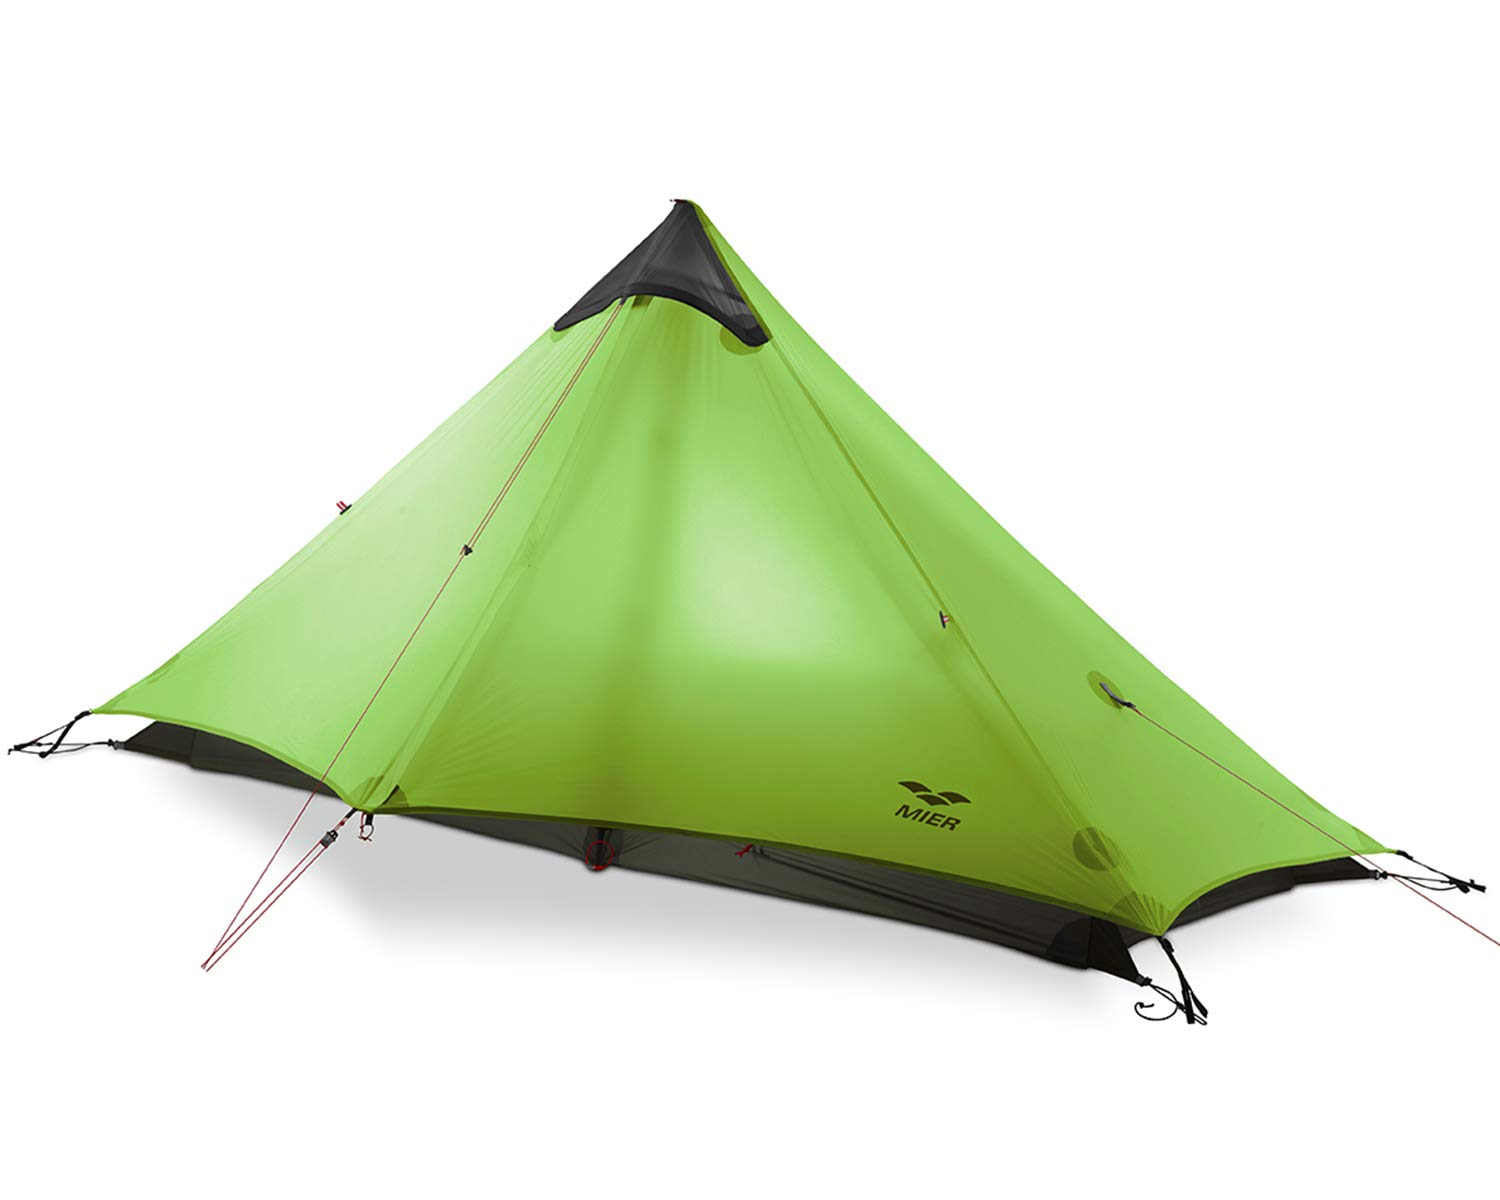 MIER Ultralight Tent 3-Season Backpacking Tent for 1-Person or 2-Person Camping, Trekking, Kayaking, Climbing, Hiking (Trekking Pole is NOT Included), Green, 1-Person